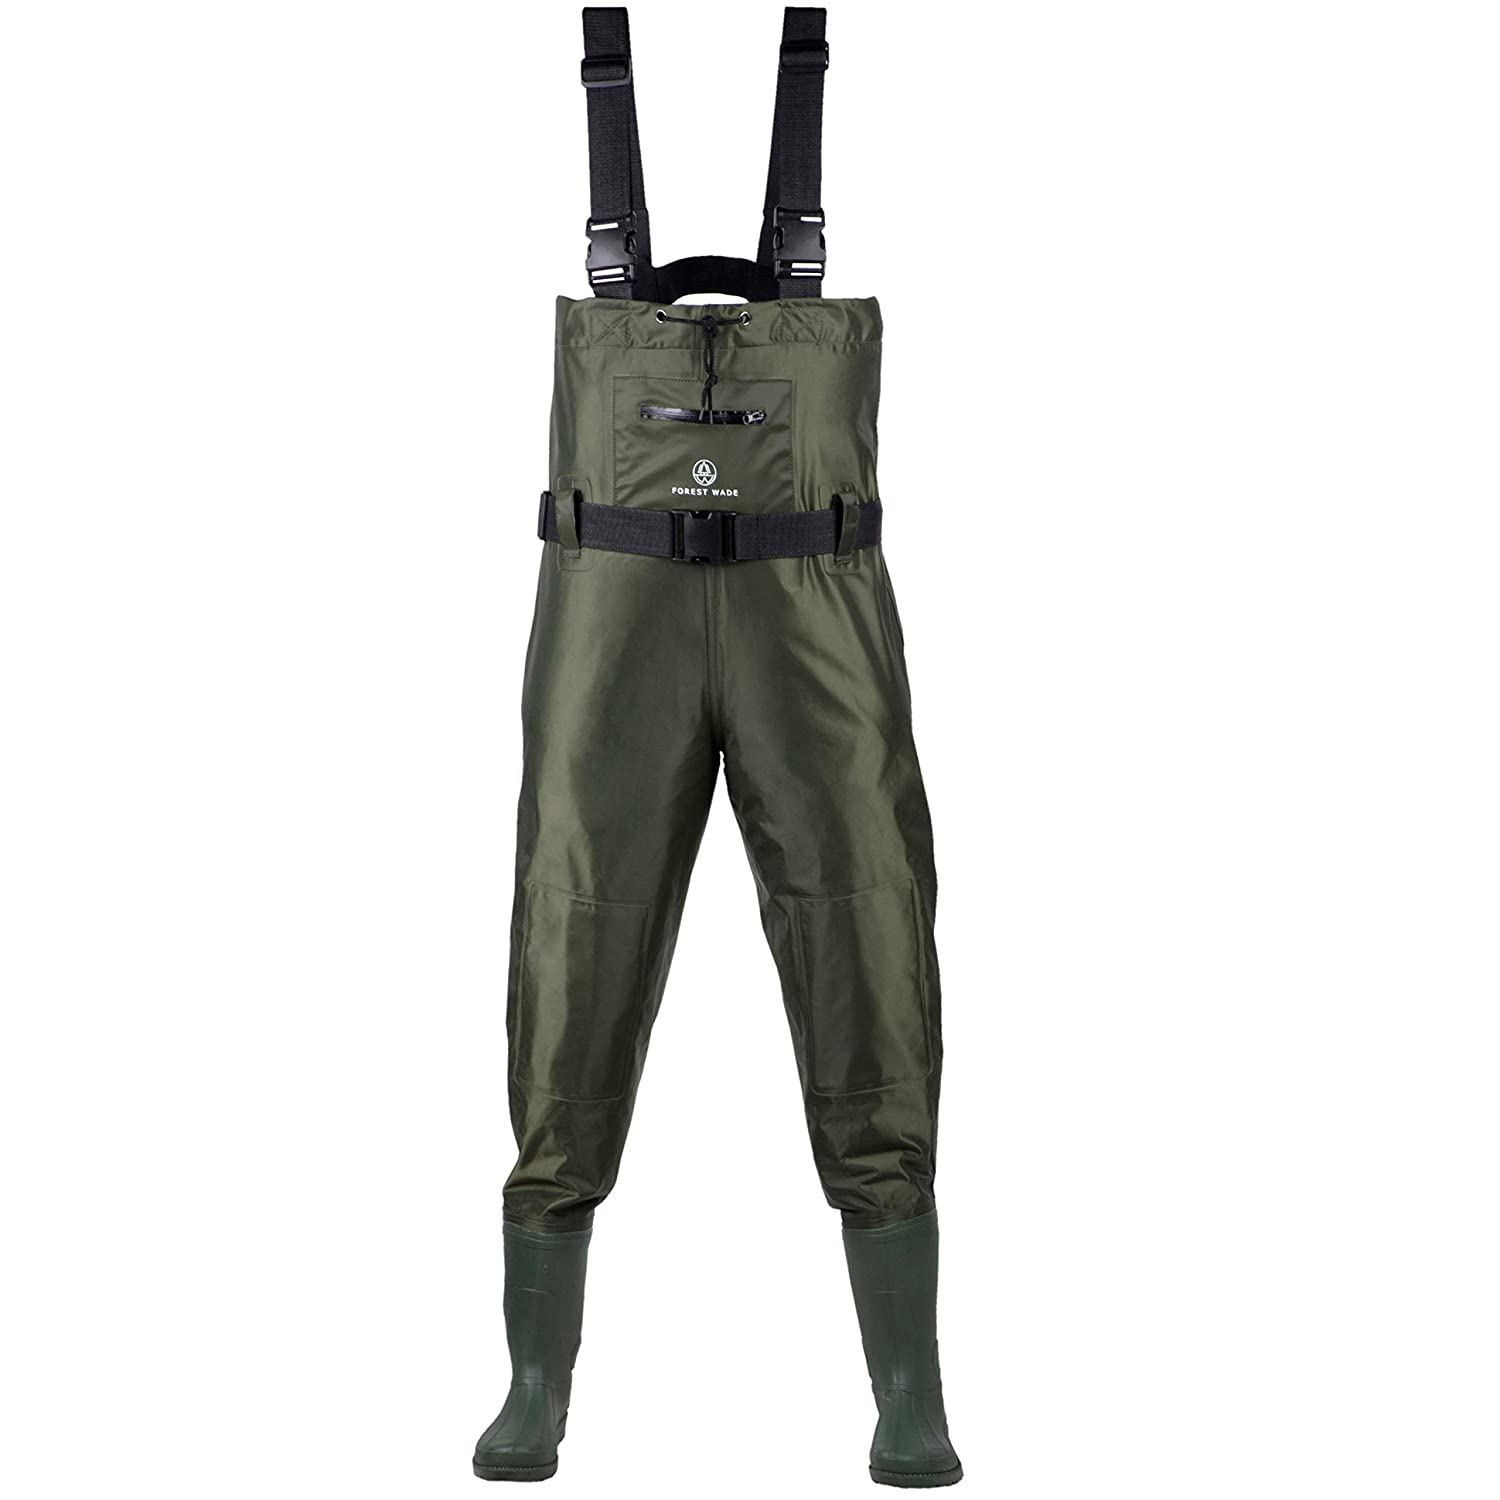 Fishing Chest Waders for Men with Boots – Breathable Nylon PVC Waterproof Fly Fishing, Hunting Bootfoot Wader for Women – Comfortable Mens Fisherman Pants – Large Zippered Pocket Knee Pads